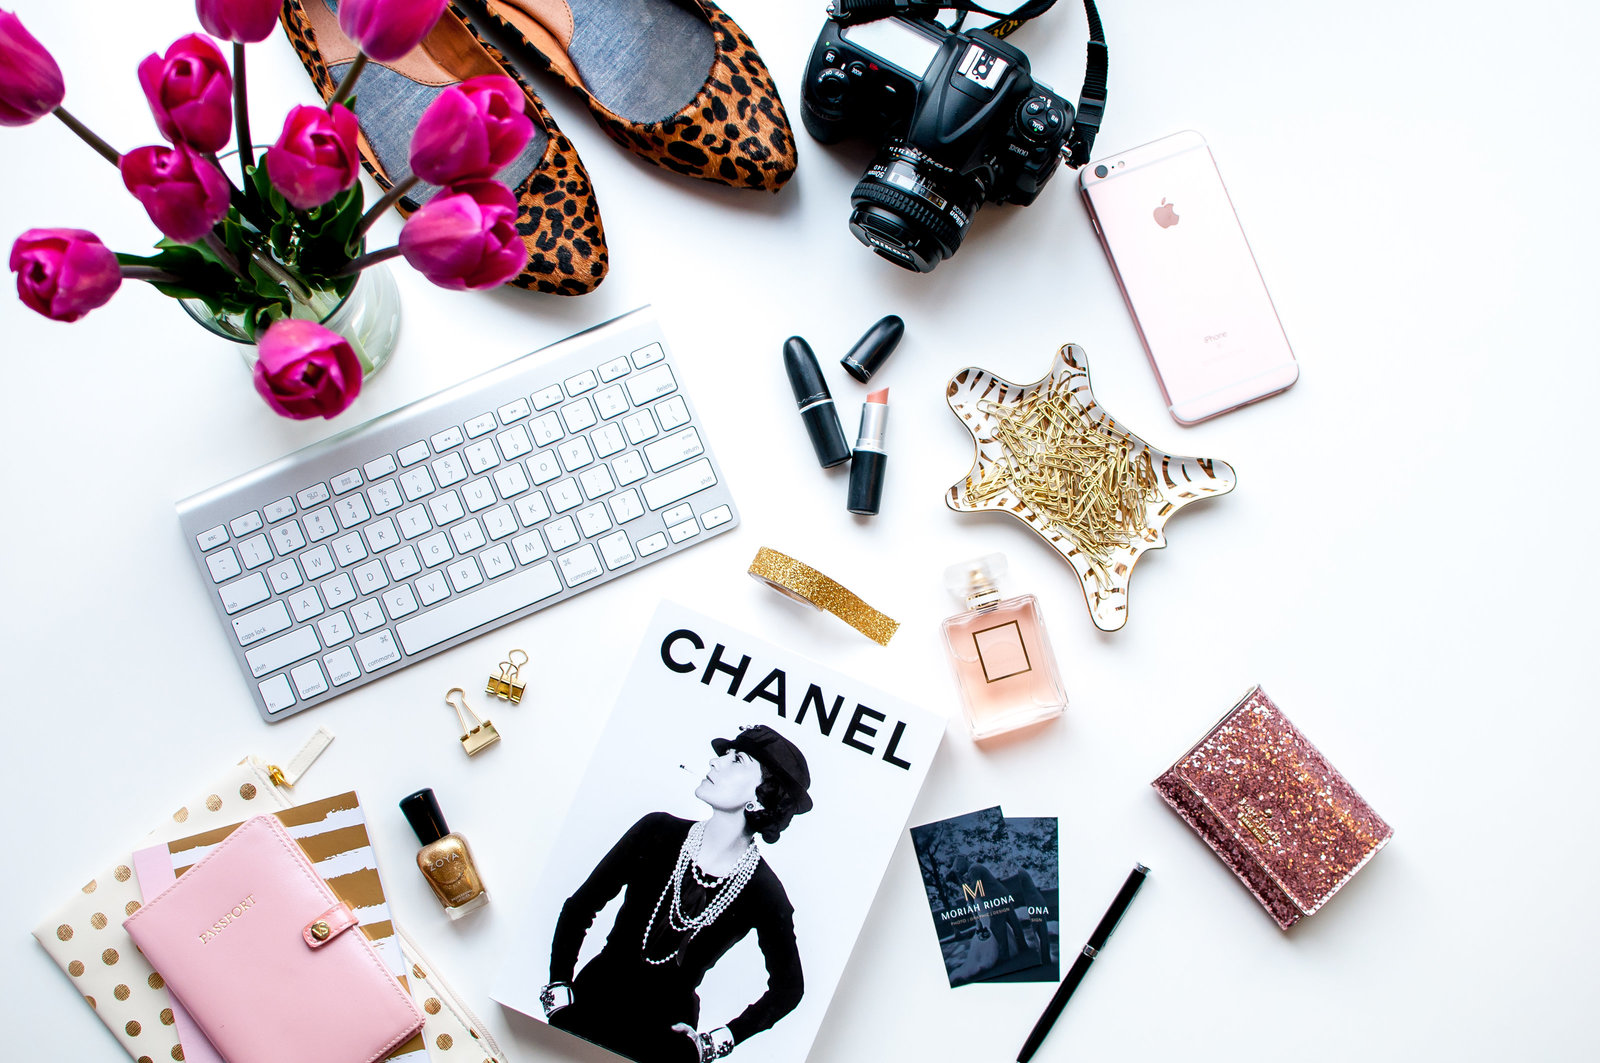 Custom styled stock photography for bosslady branding. Leopard print shoes, pink tulips, nikon camera, chanel perfume, passport and chanel book